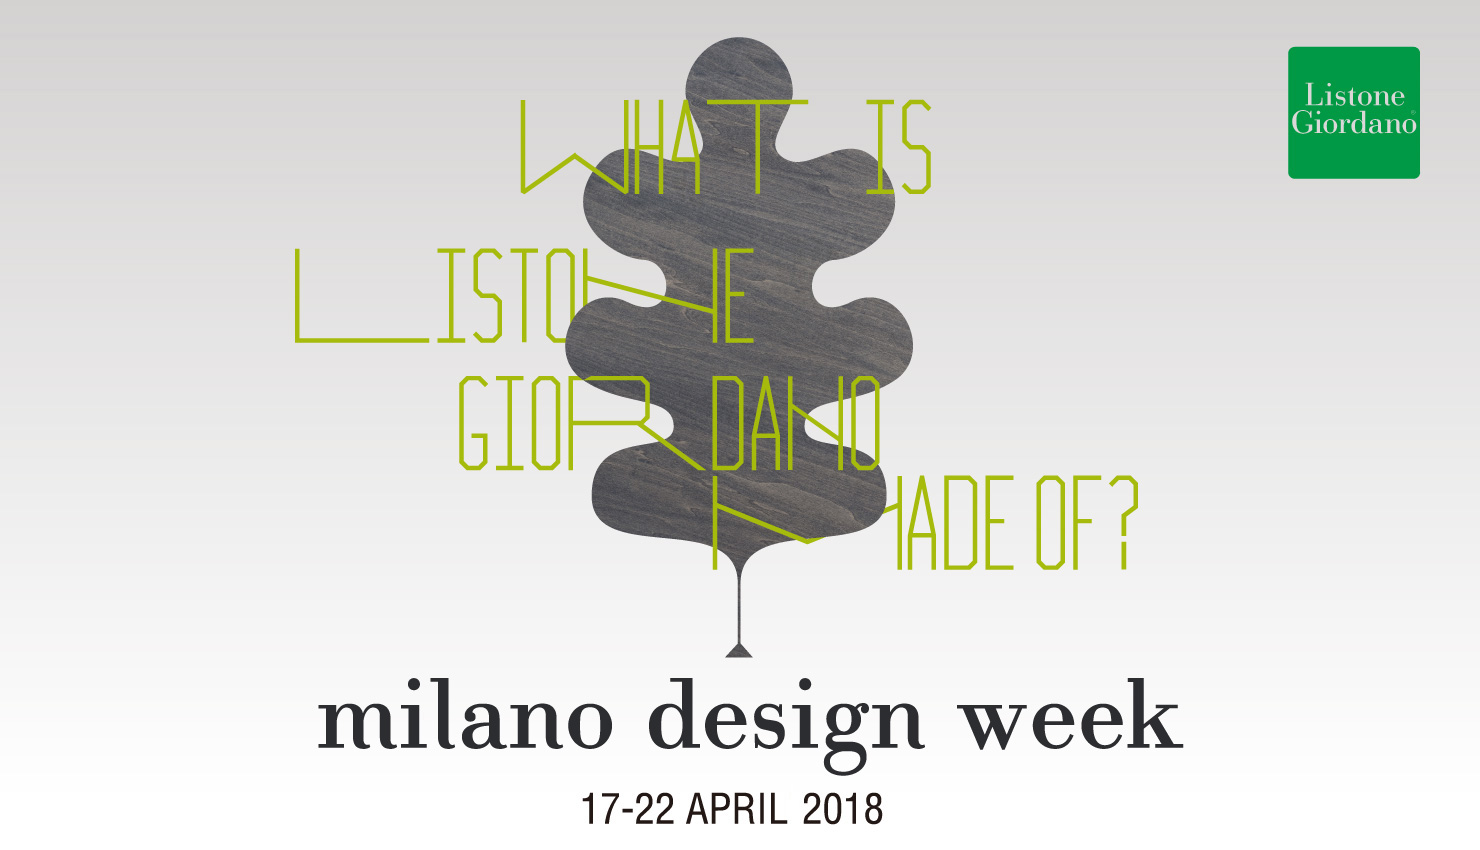 WHAT IS LISTONE GIORDANO MADE OF? milano design week 17-22 APRIL 2018